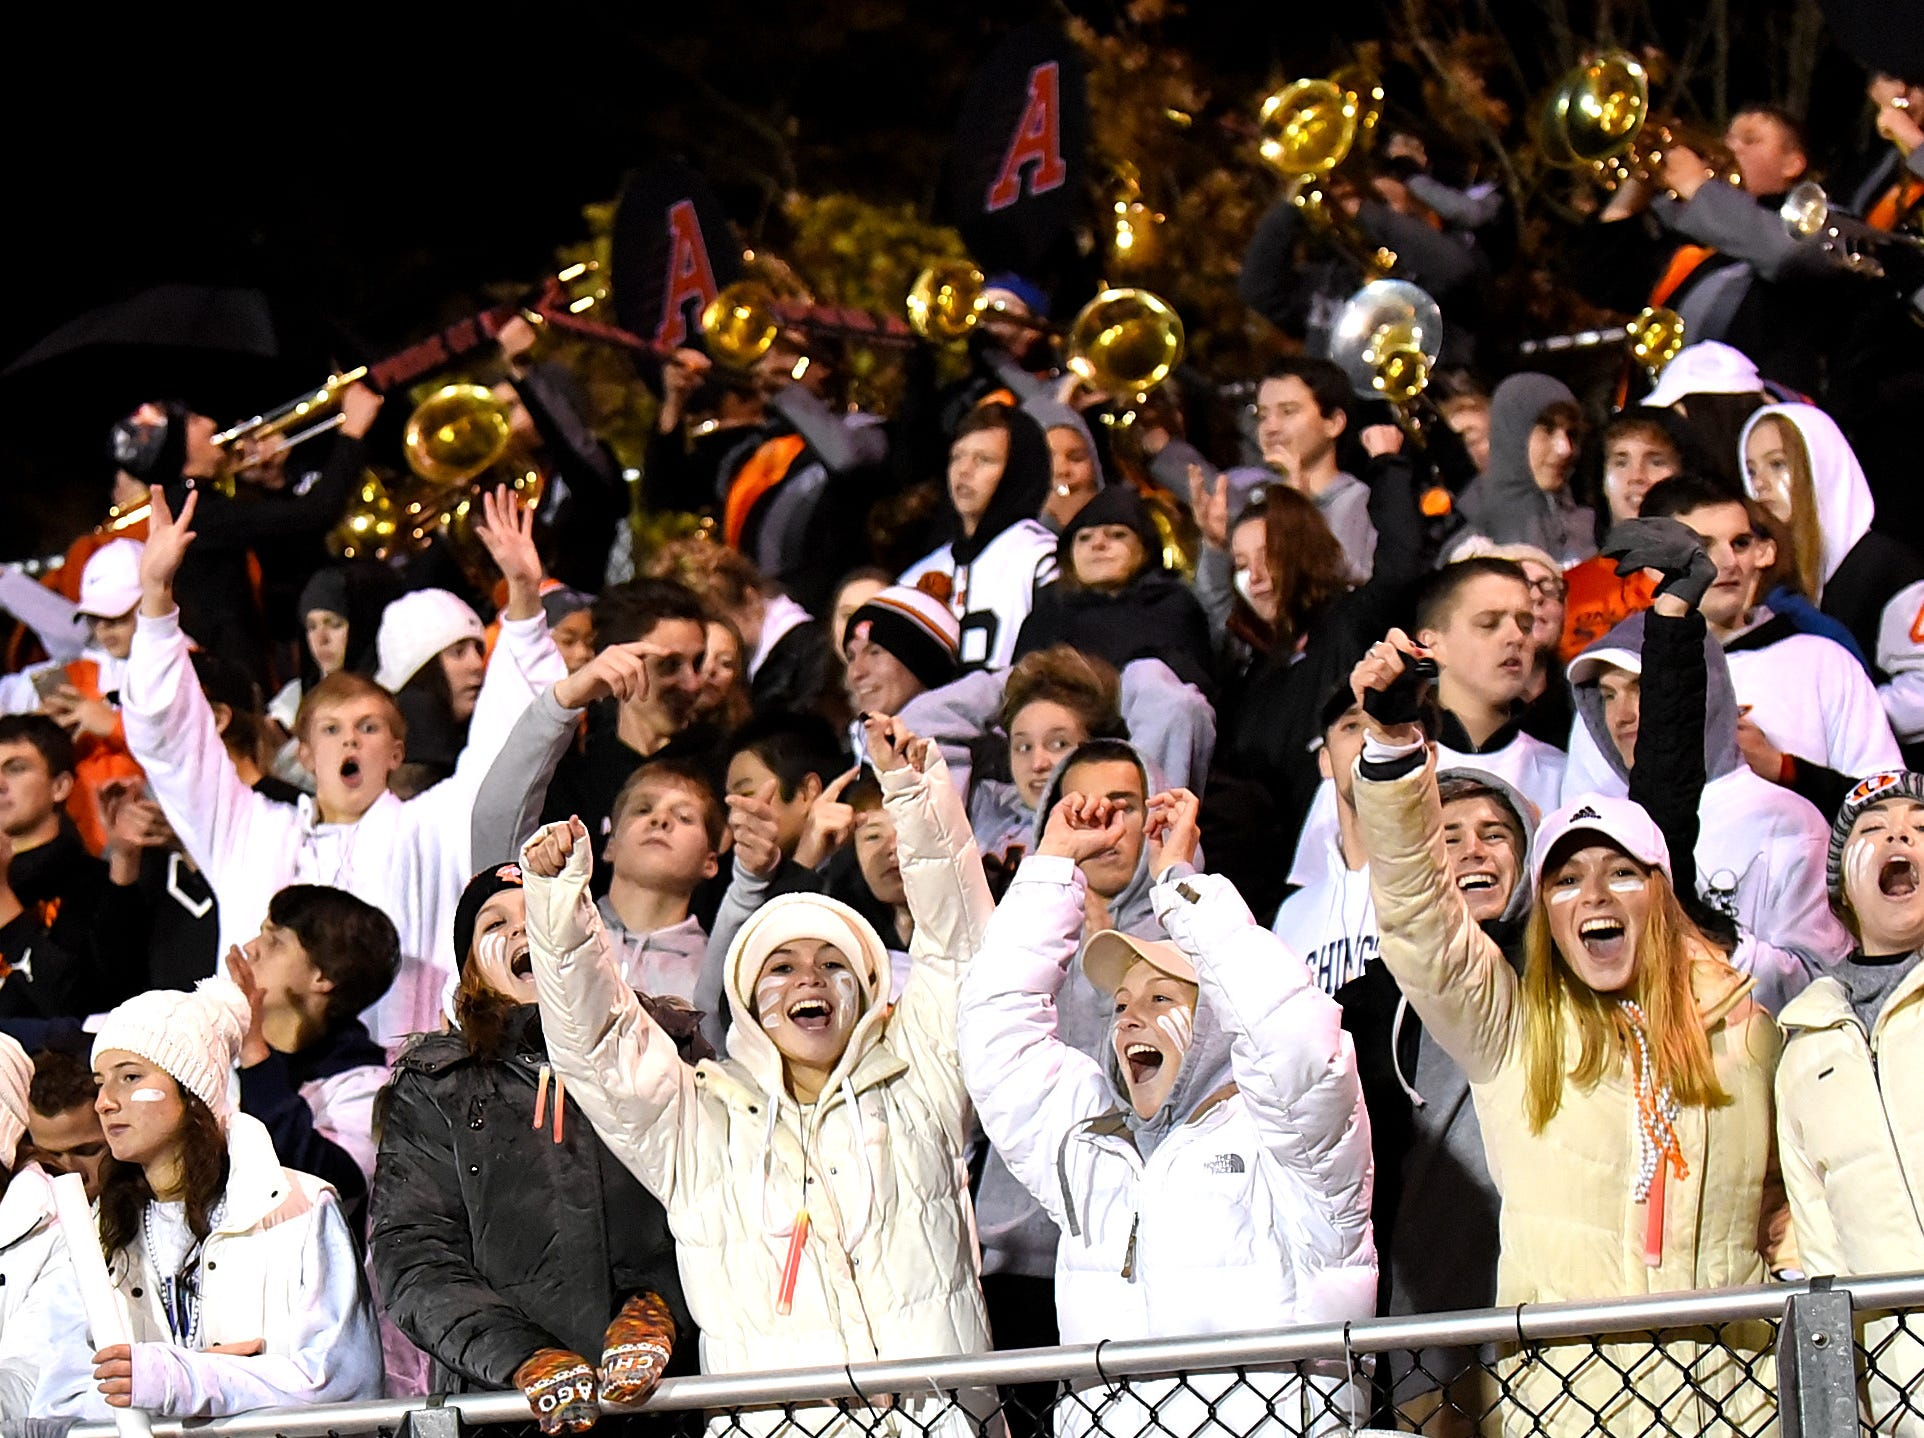 Anderson fans celebrate their victory in the Division 2 Region quarterfinal playoff game, November 2, 2018.